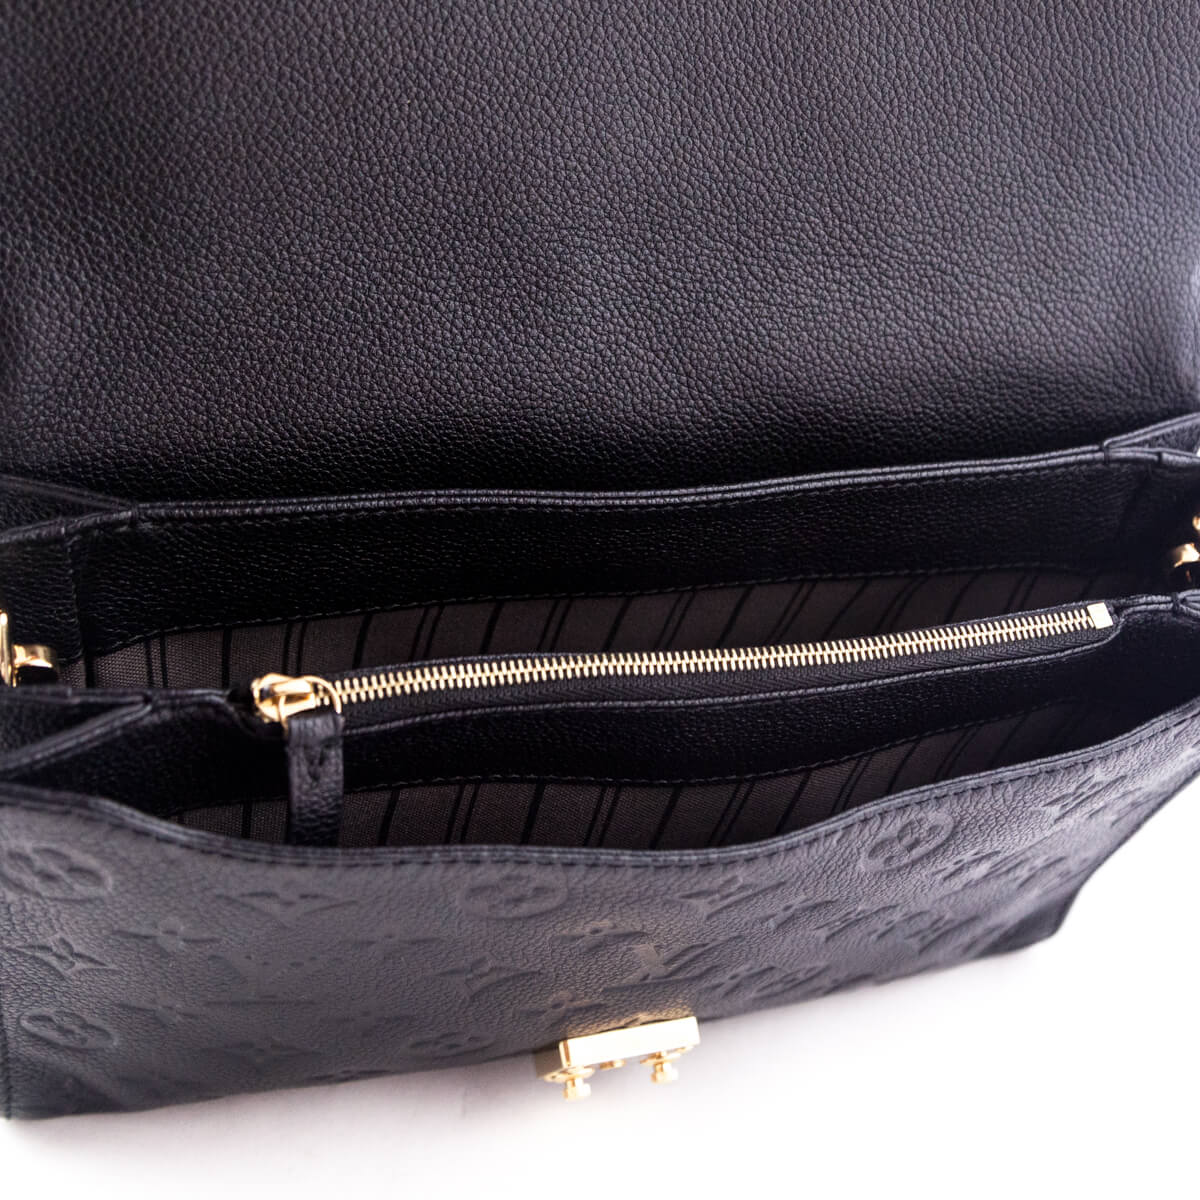 ... Louis Vuitton Black Empreinte Fascinante Bag - LOVE that BAG - Preowned  Authentic Designer Handbags ... efcd7e064c0db